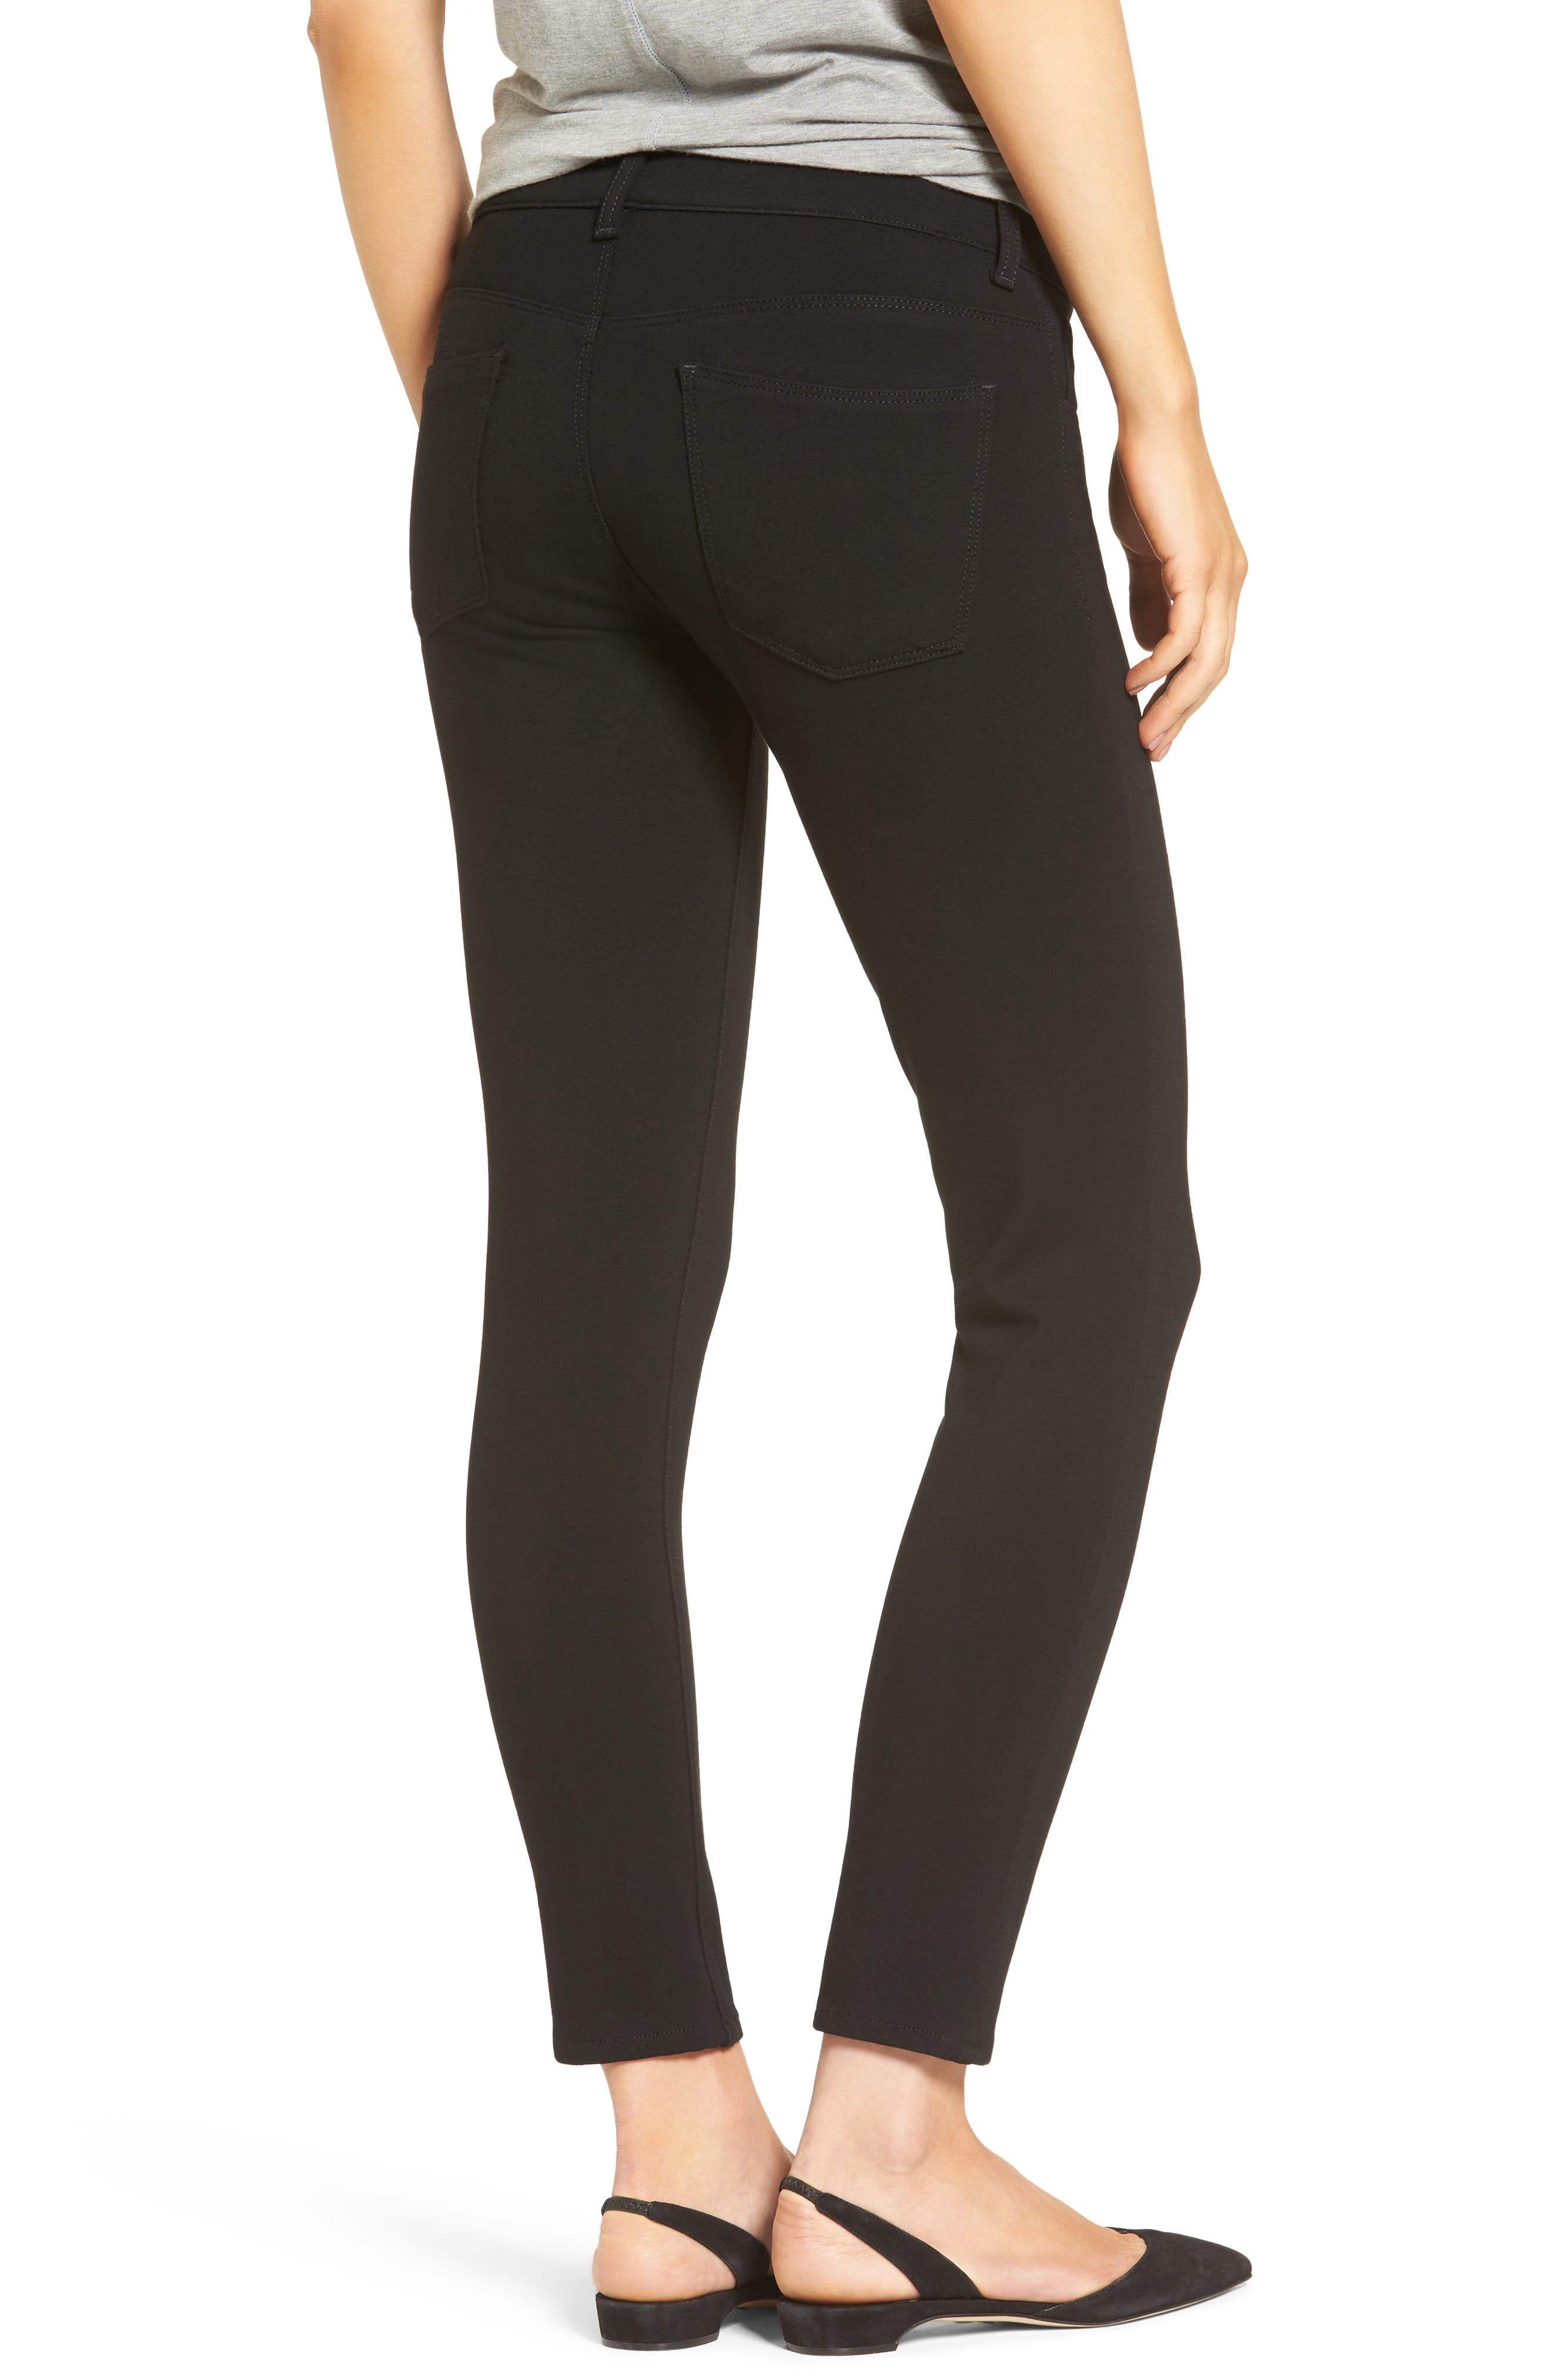 Alternate Image 2  - KUT from the Kloth Donna Ponte Knit Skinny Jeans (Regular & Petite)